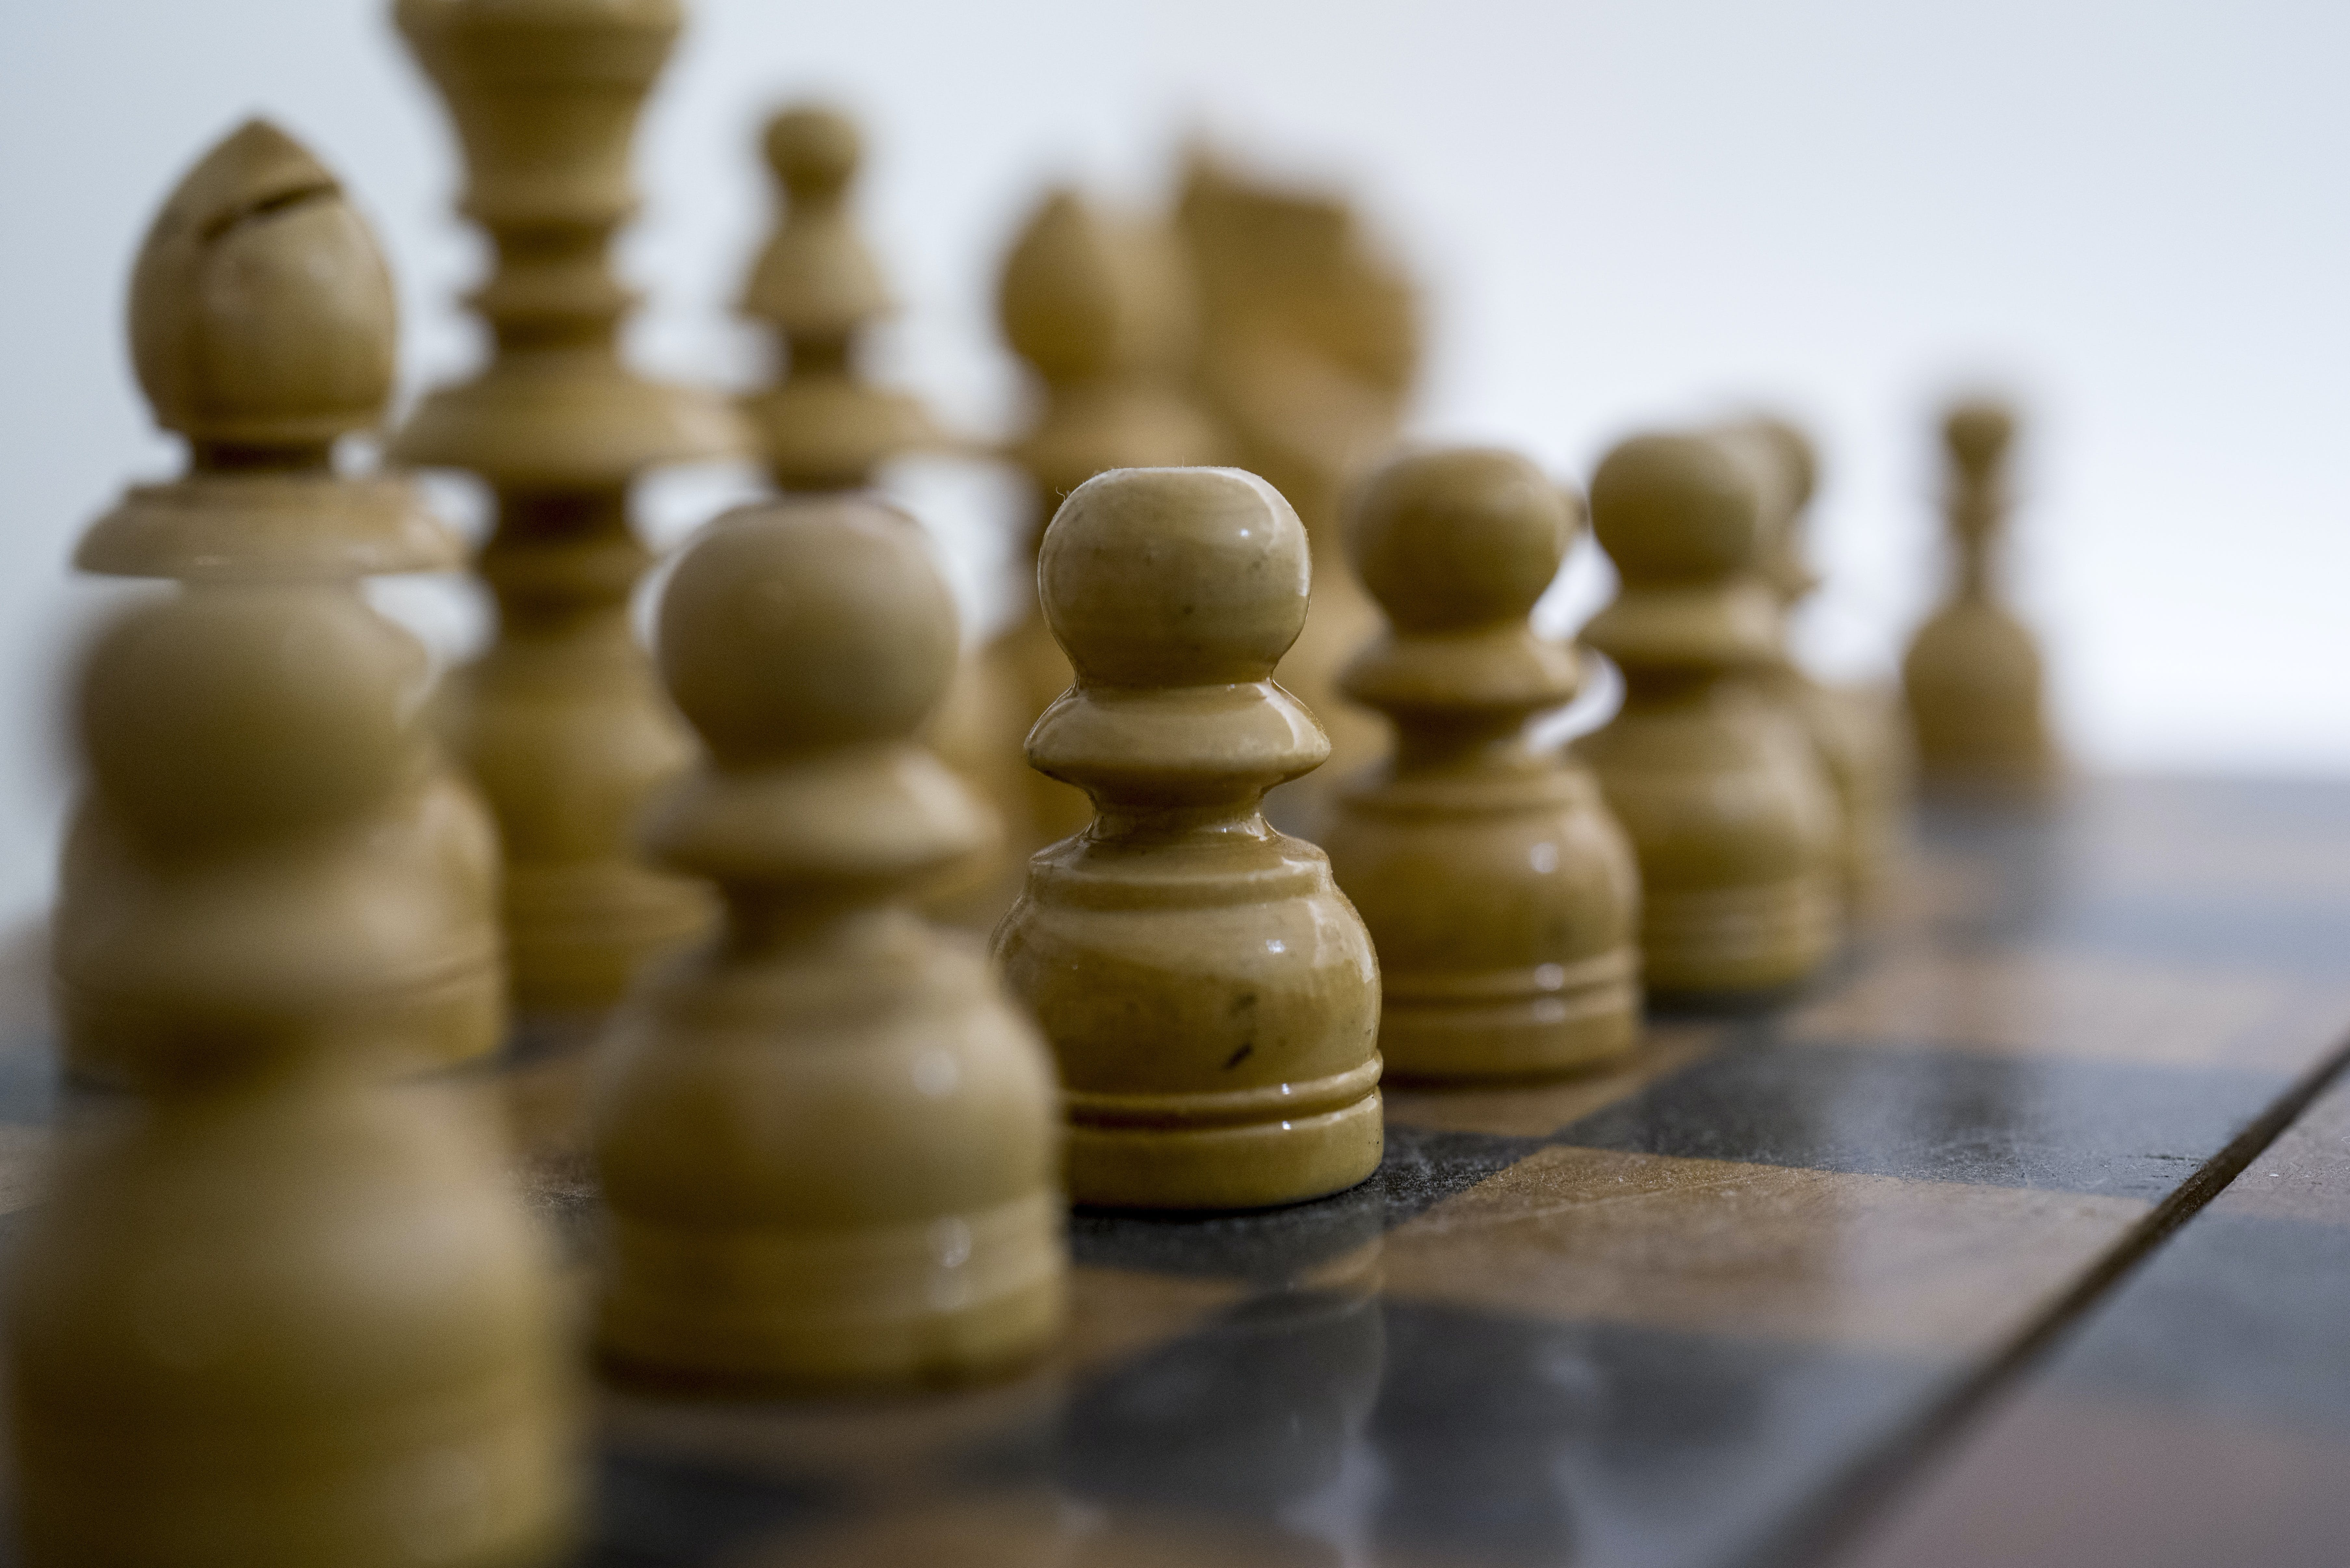 Free stock photo of battle, board, challenge, check